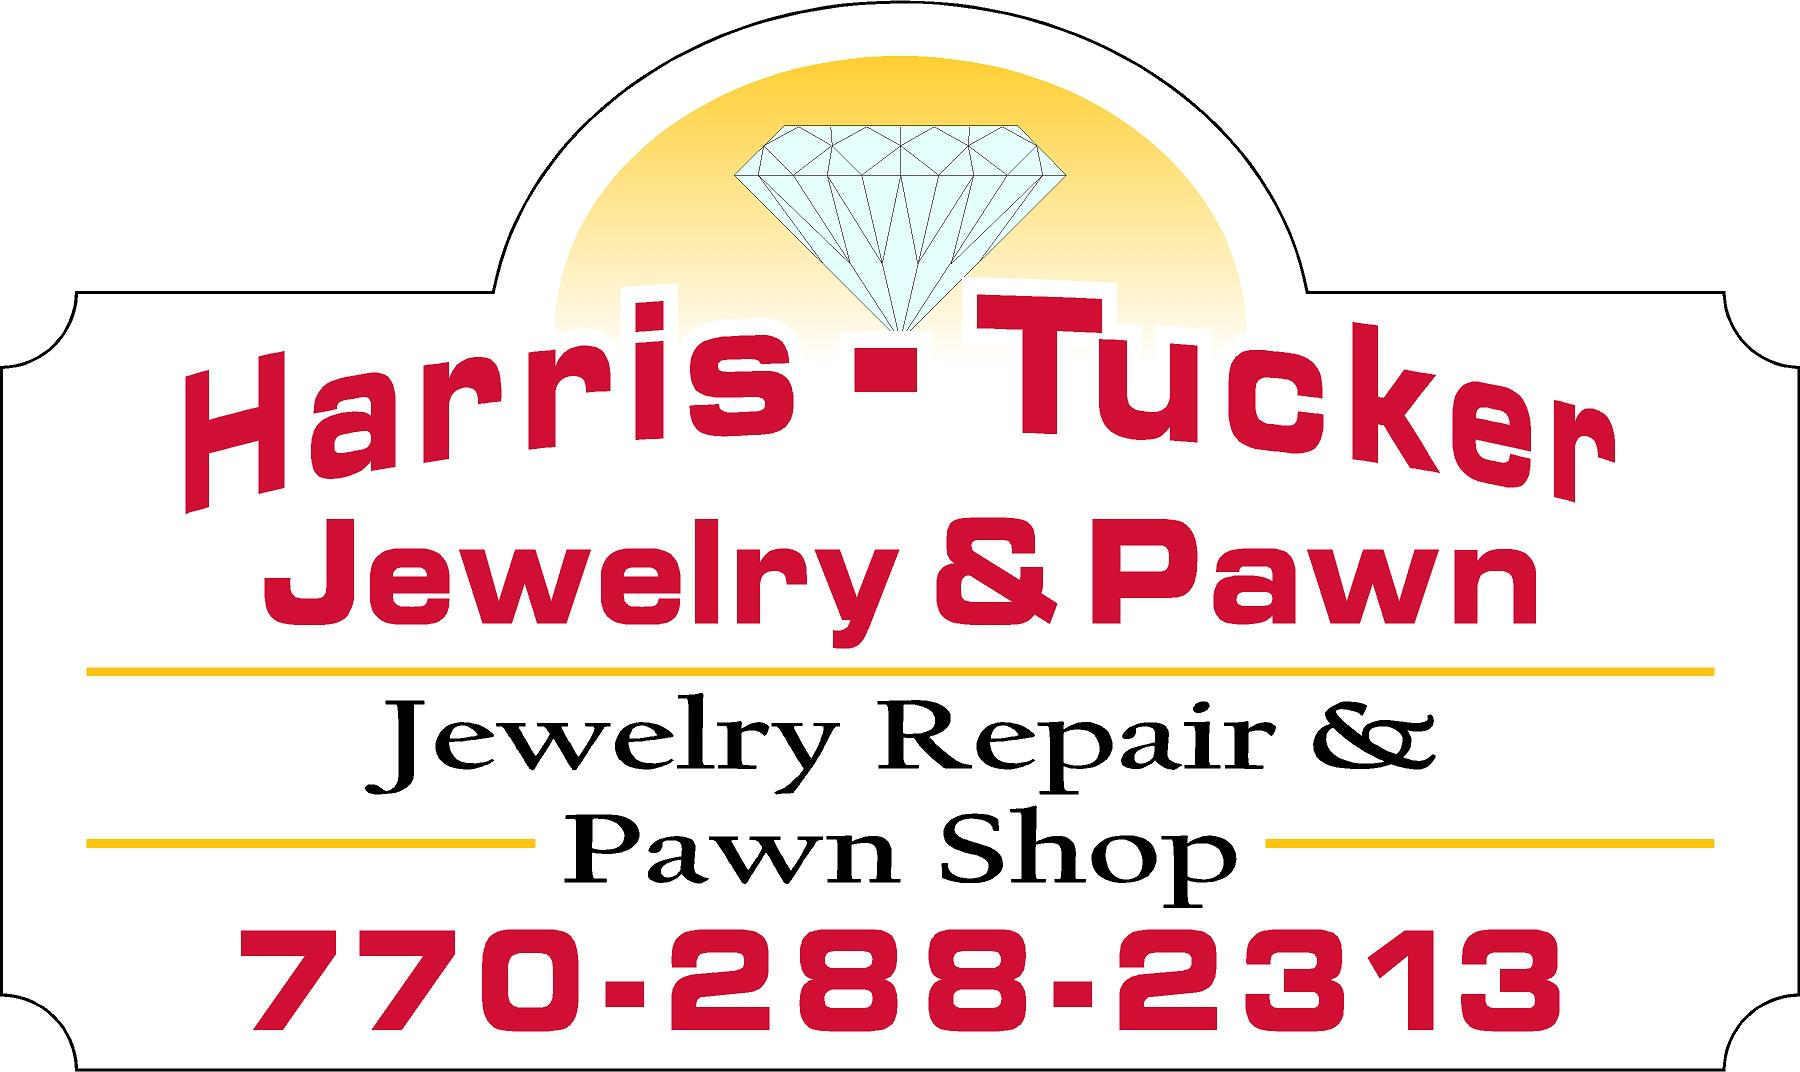 Harris – Tucker Jewelry & Pawn